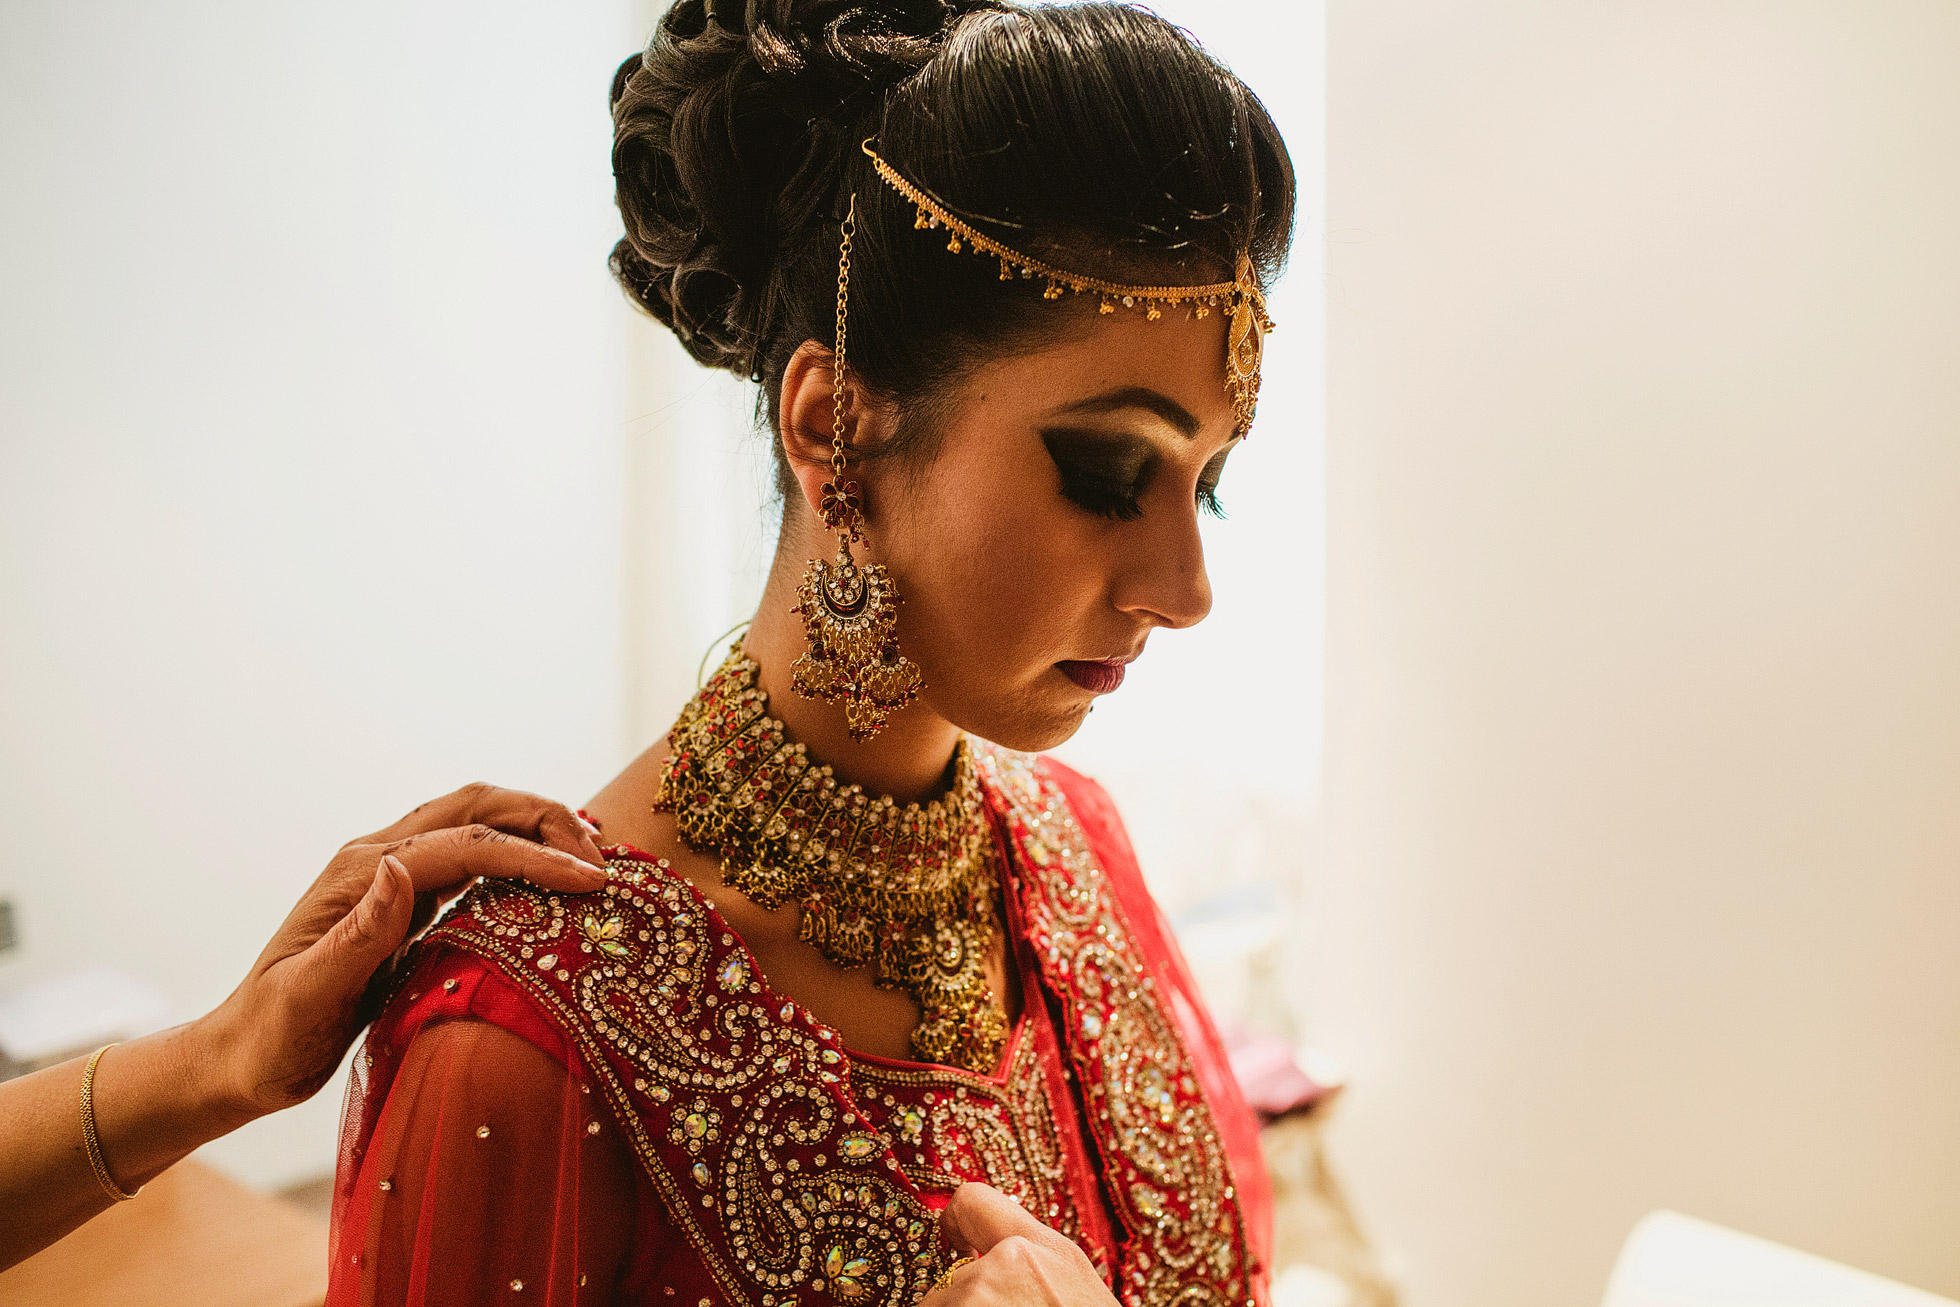 Indian Wedding Bridal Preparations in Harrogate